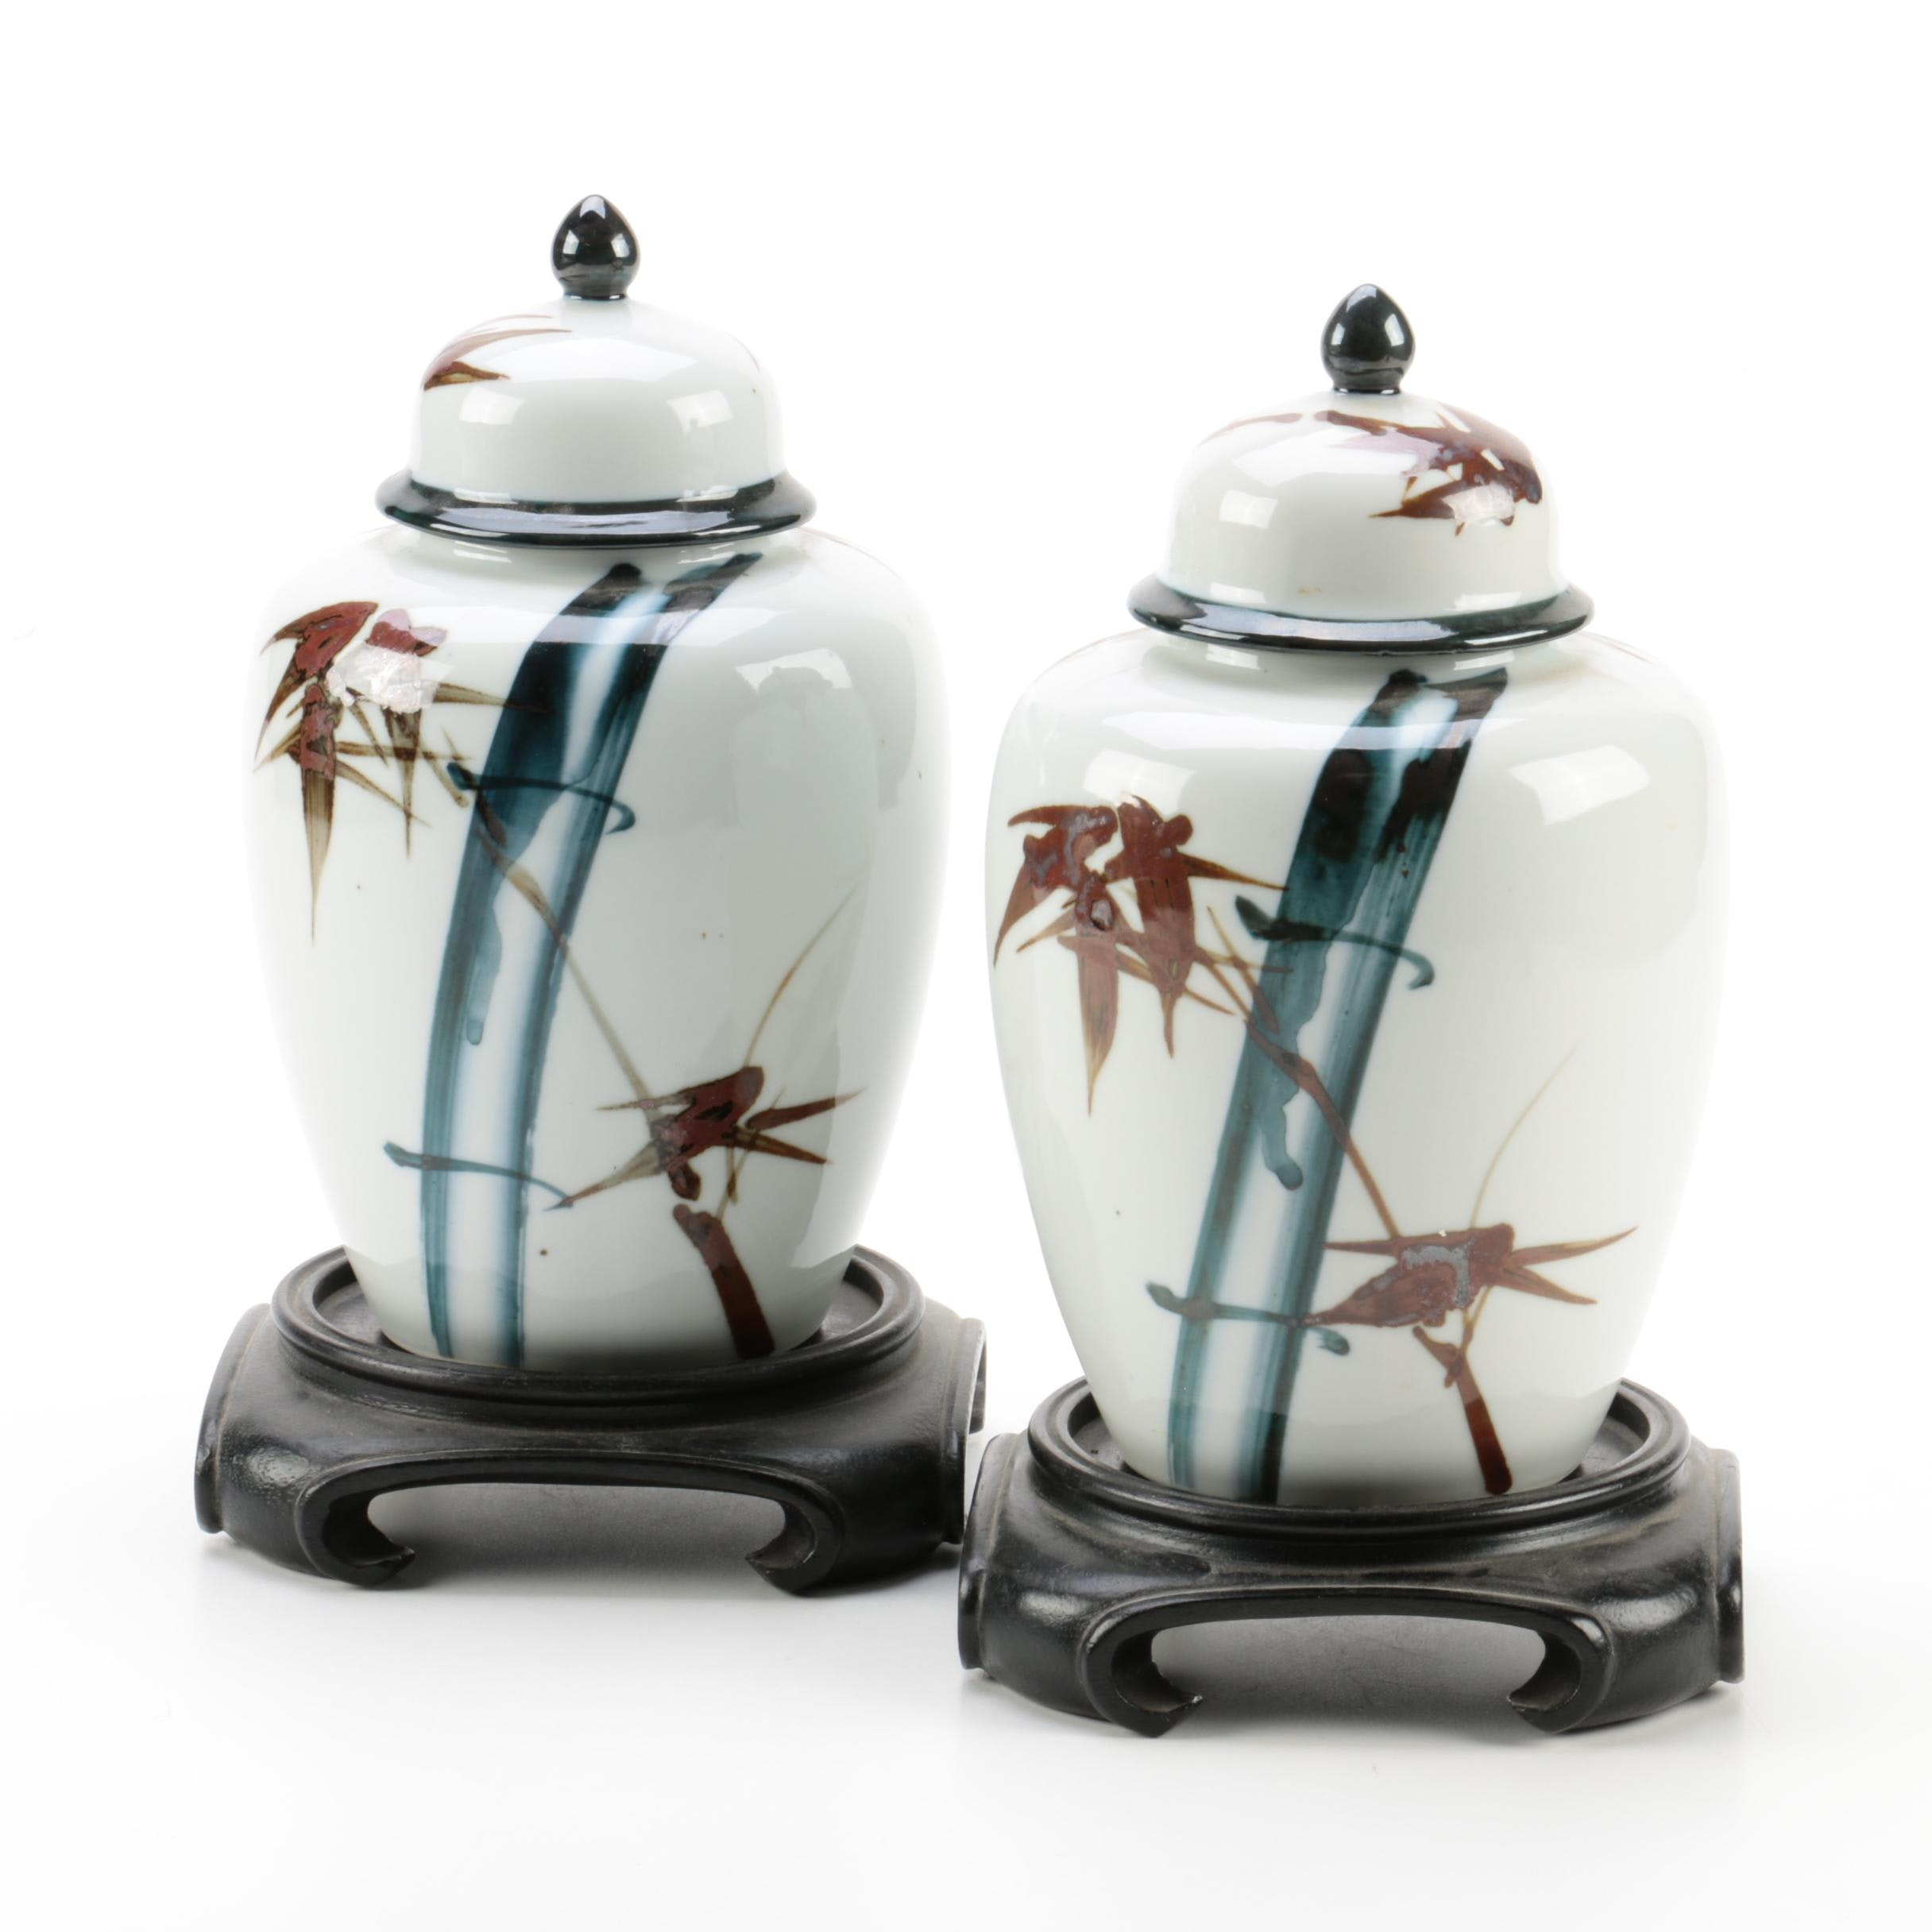 Chinese Ceramic Ginger Jars with Wood Stands